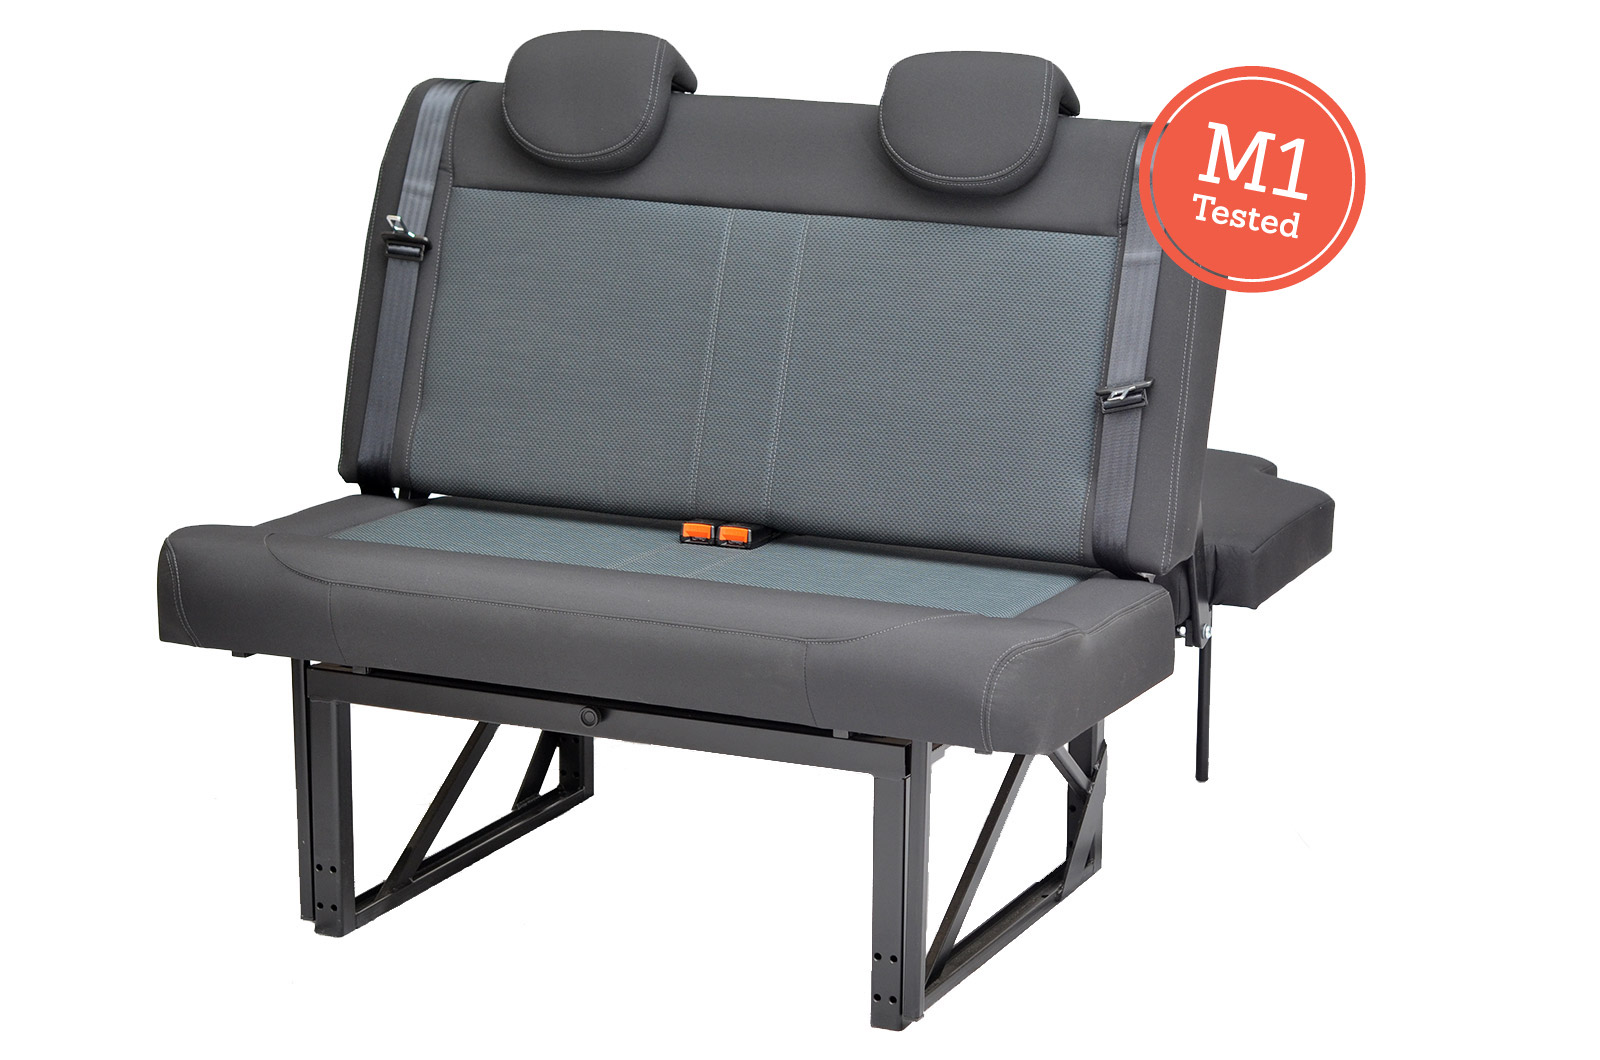 R&R Bed stowed away with M1 Rated badge with two seats